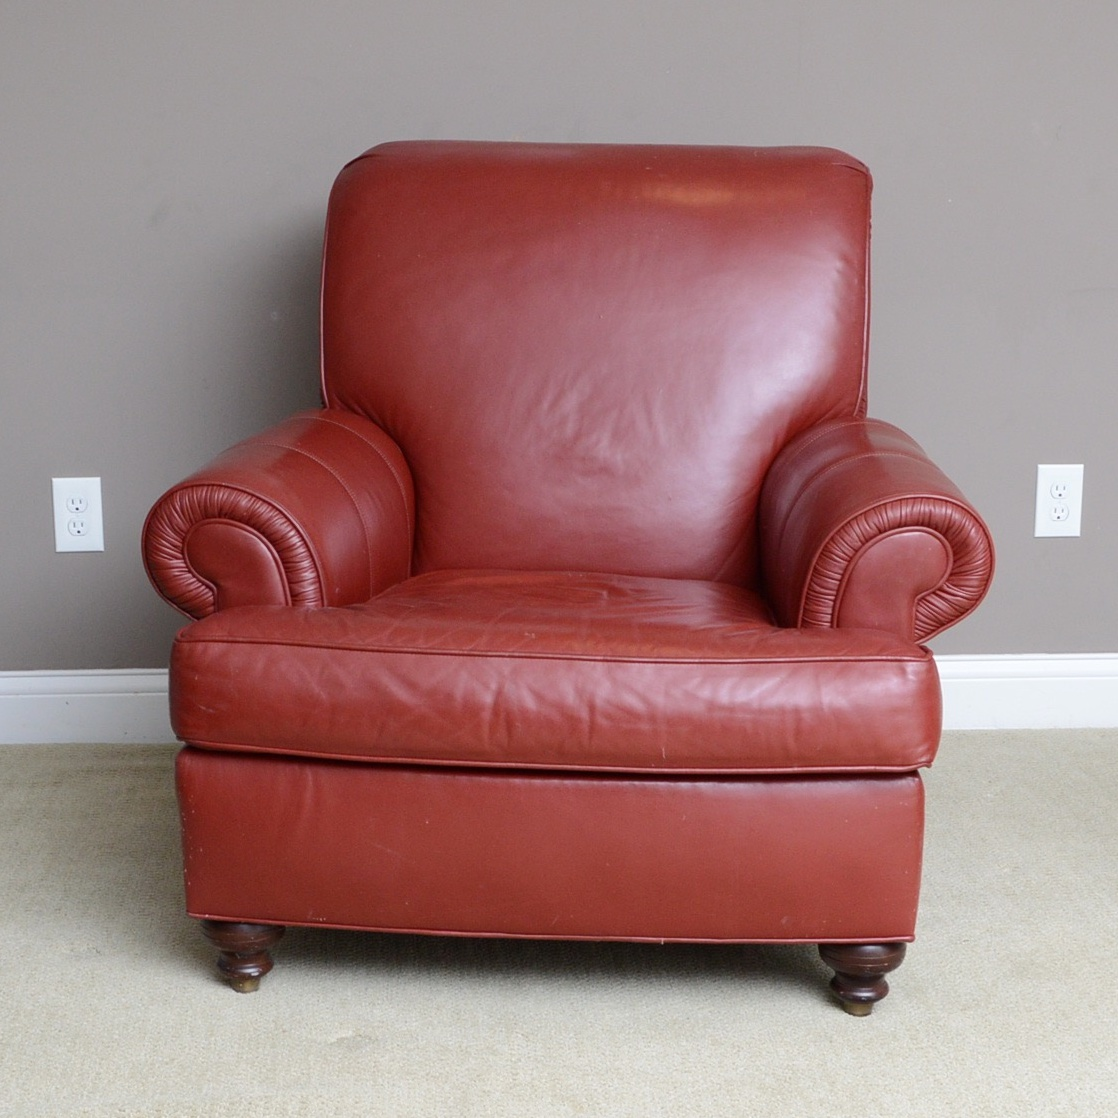 ethan allen leather chair time out chairs for toddlers red club ebth